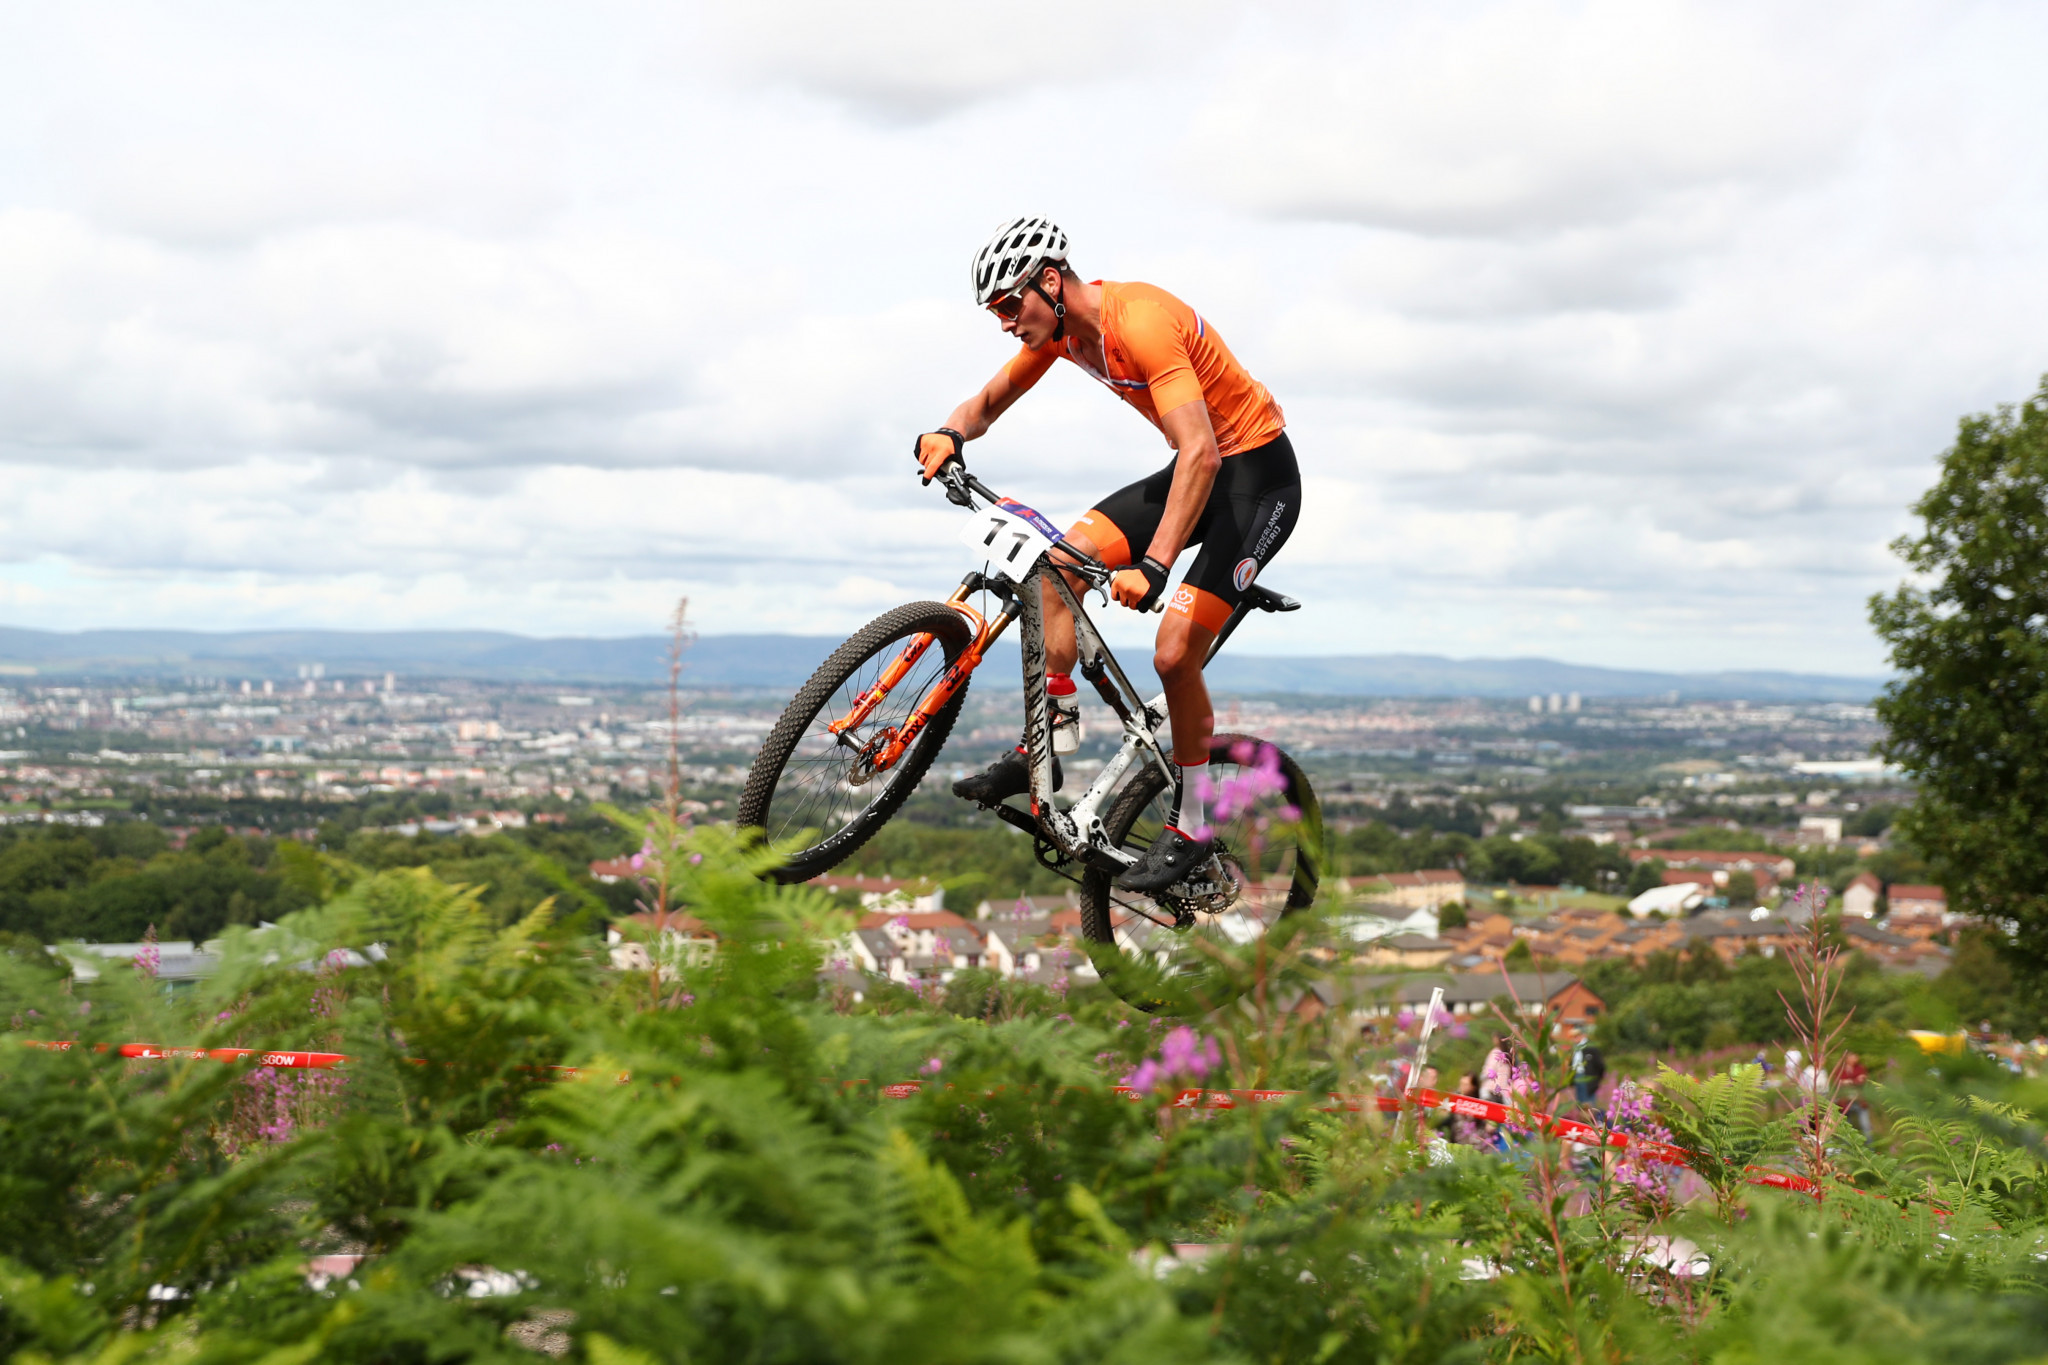 Dutchman van der Poel and American Courtney win cross-country short track events at UCI Mountain Bike World Cup